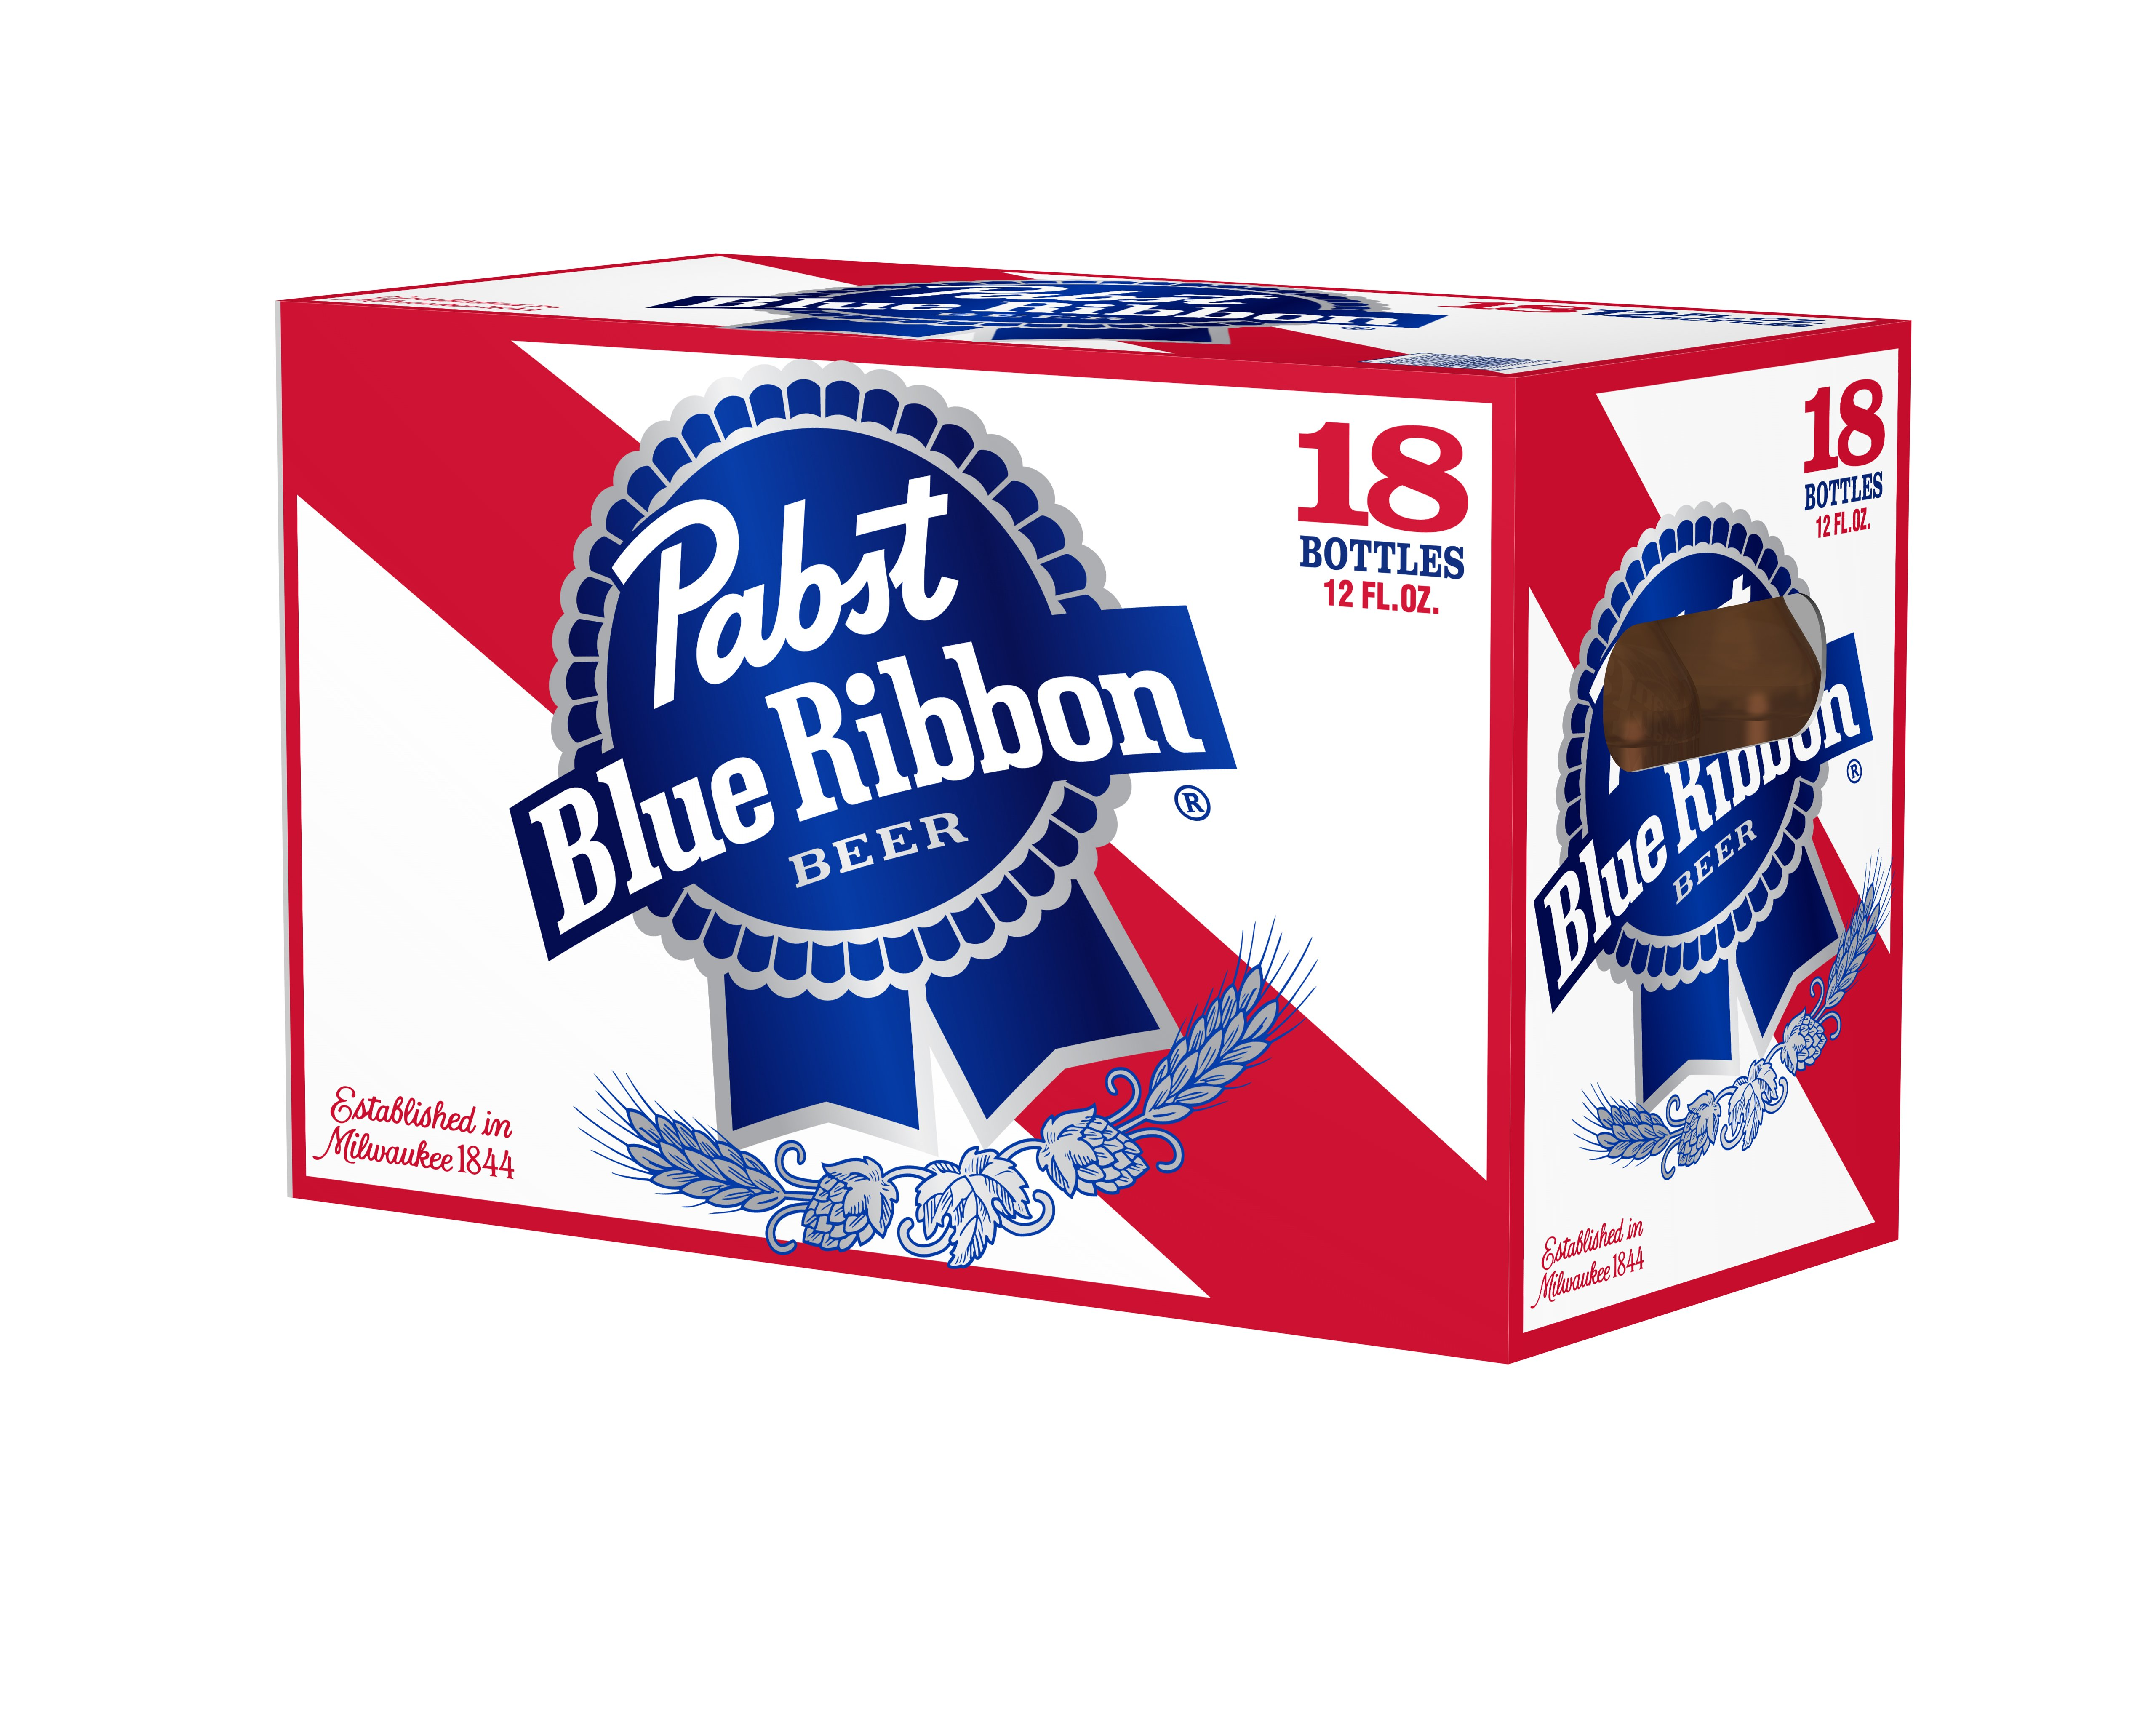 PABST BLUE RIBBON BEER alcohol (19)